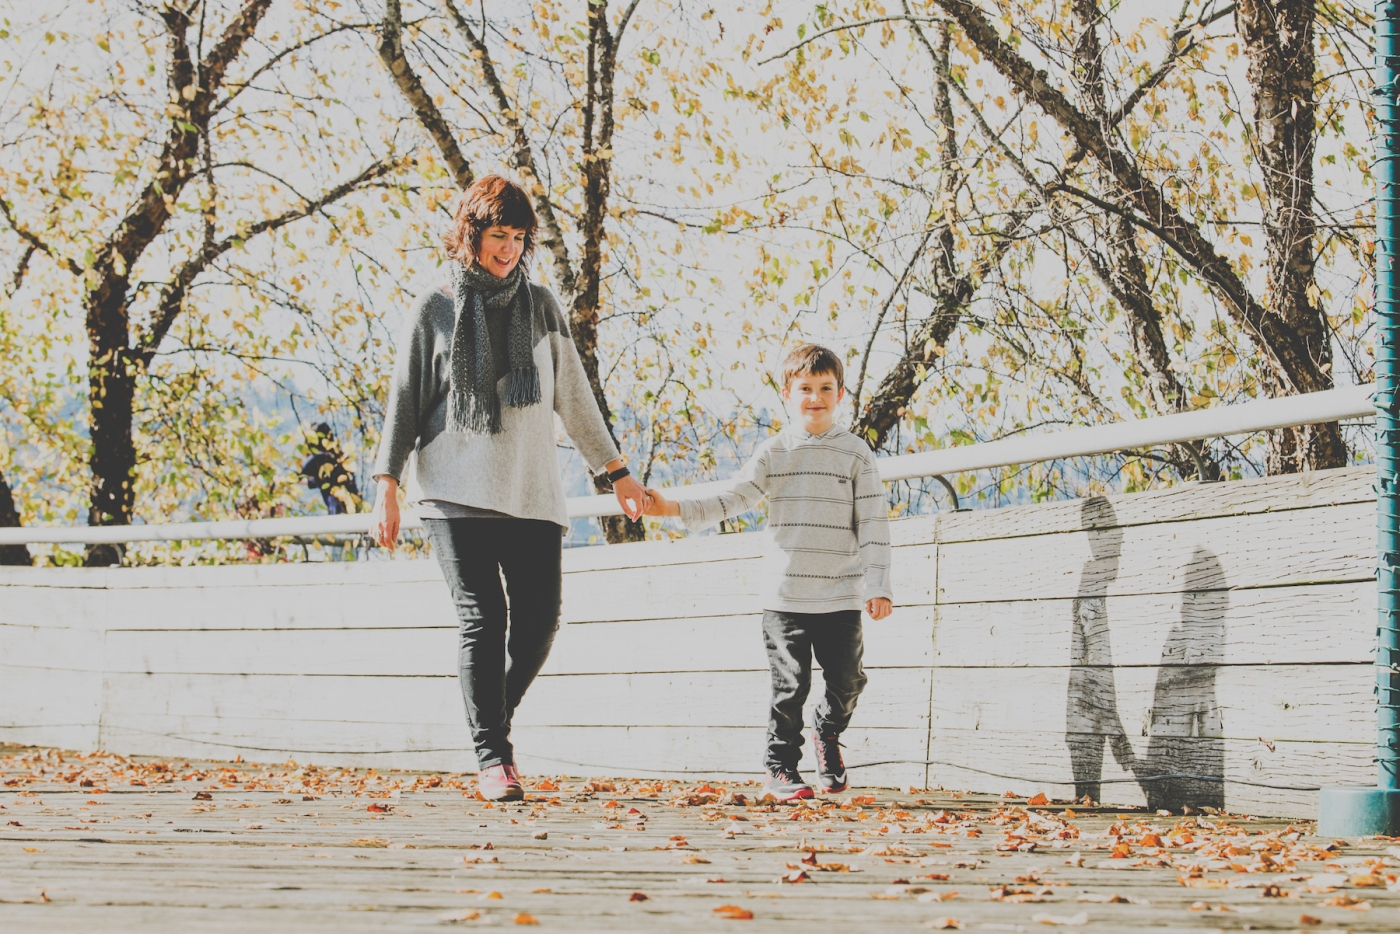 janes_photography_2016_coulon_park_renton_family_session_spencer8202